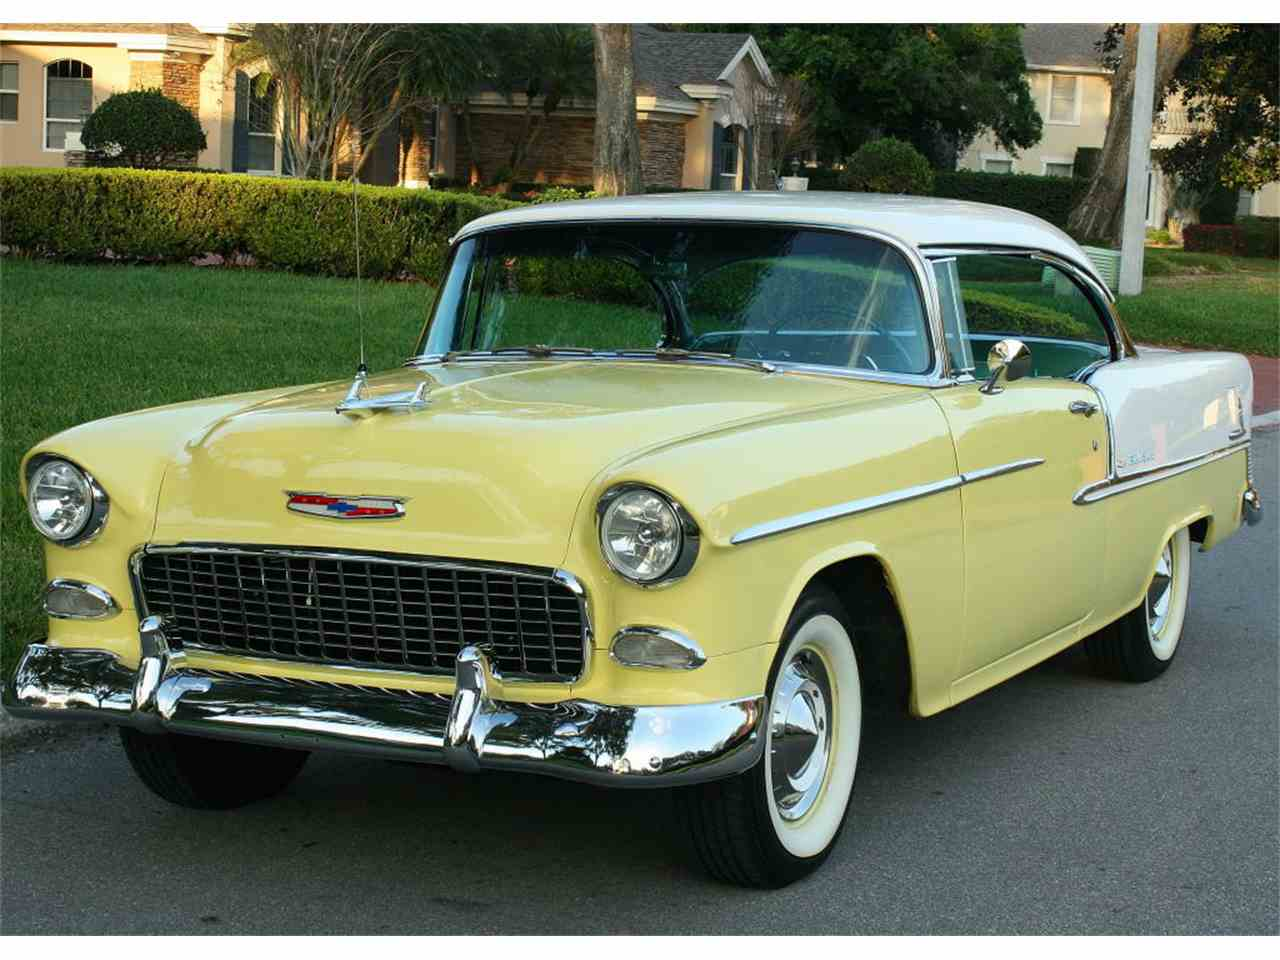 1957 Chevy Bel Air Red And White 2 Door Hardtop